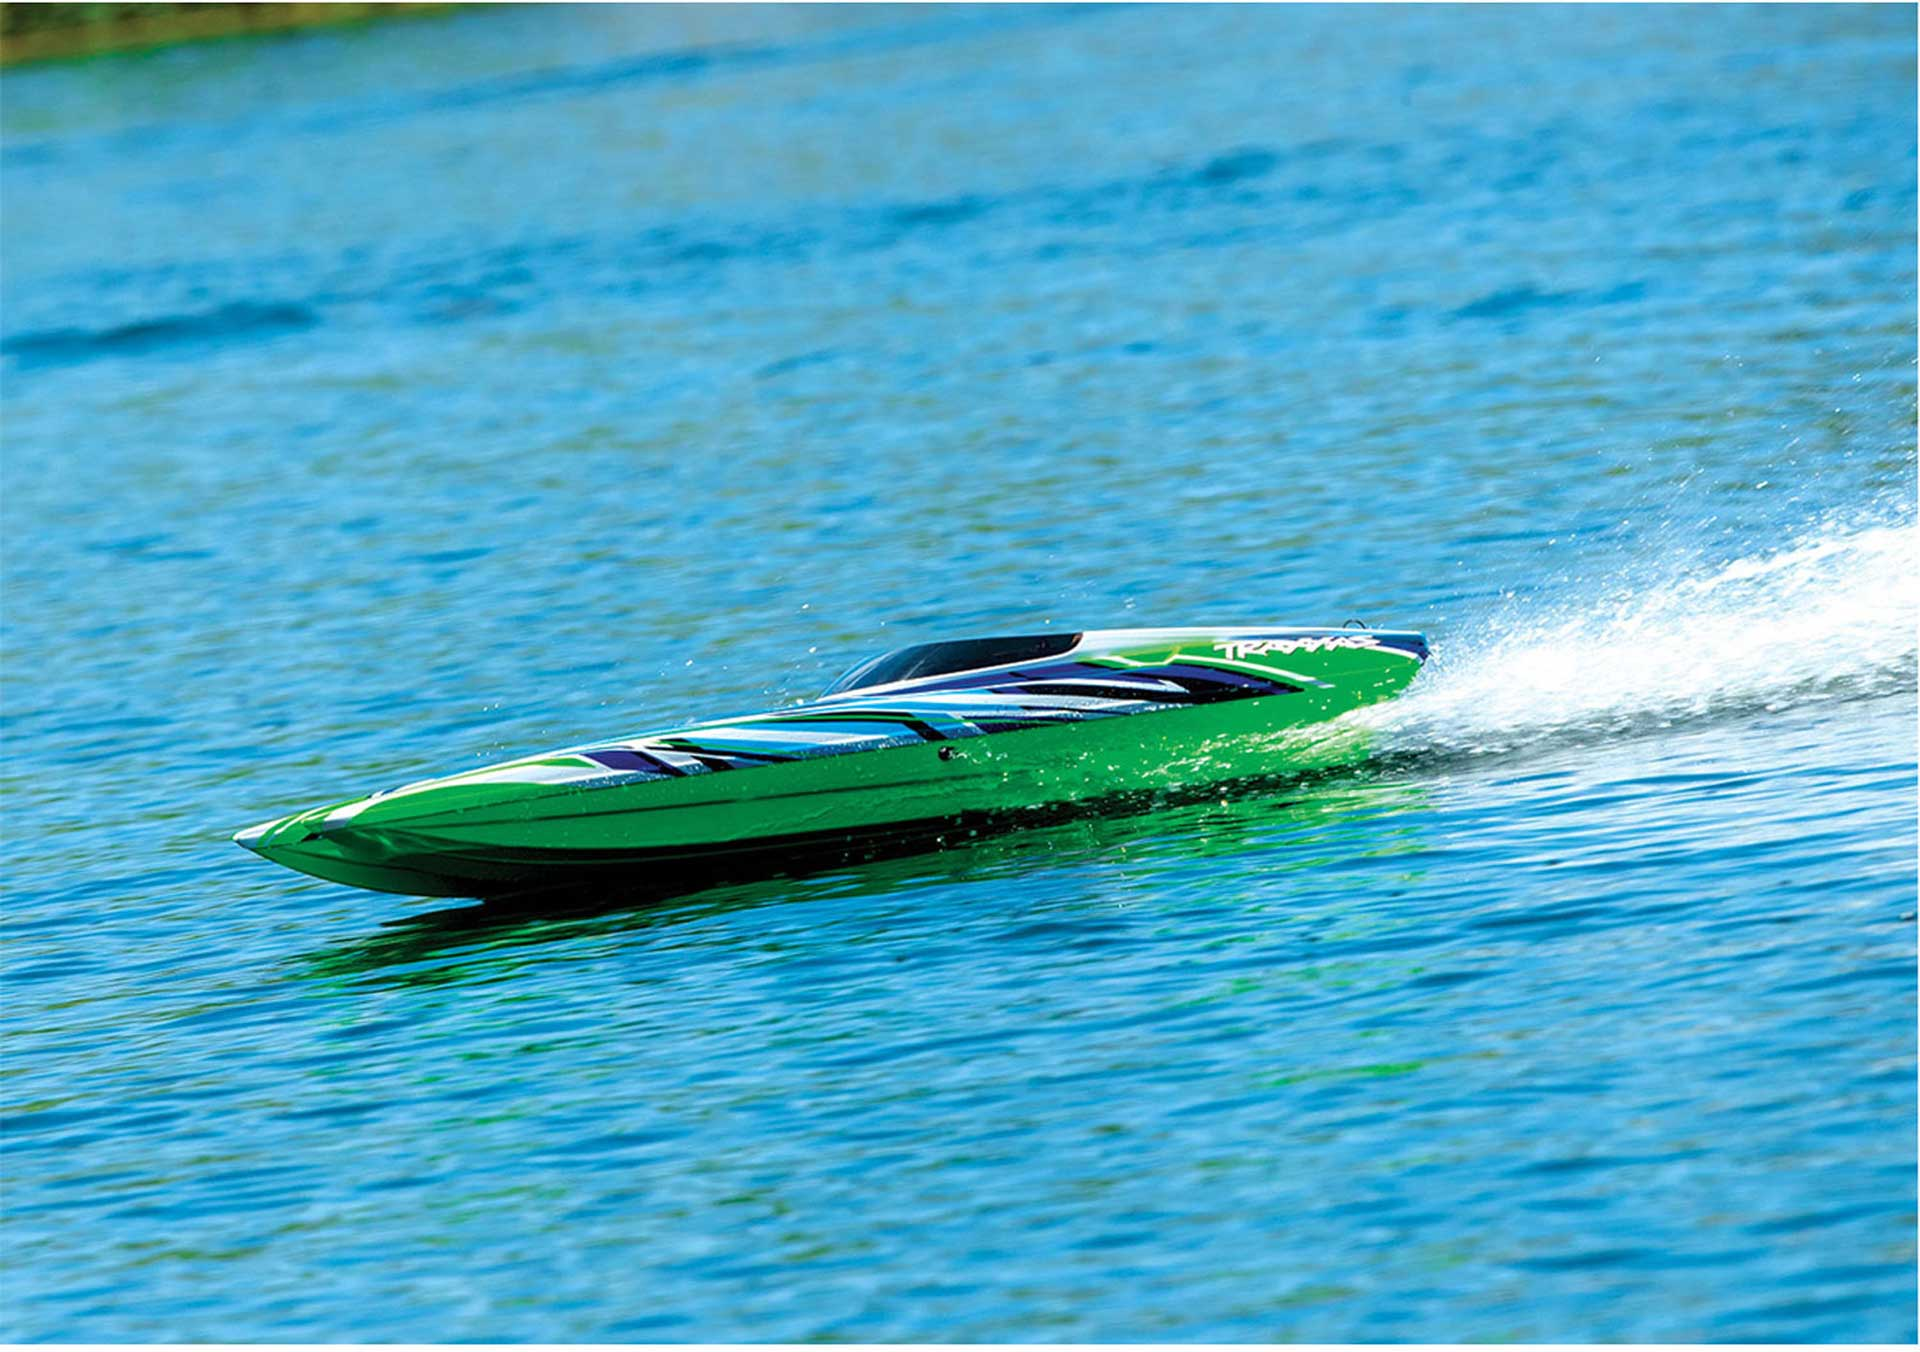 TRAXXAS DCB M41 Green-X 40 inch brushless Cata- maran race boat without batt./loader